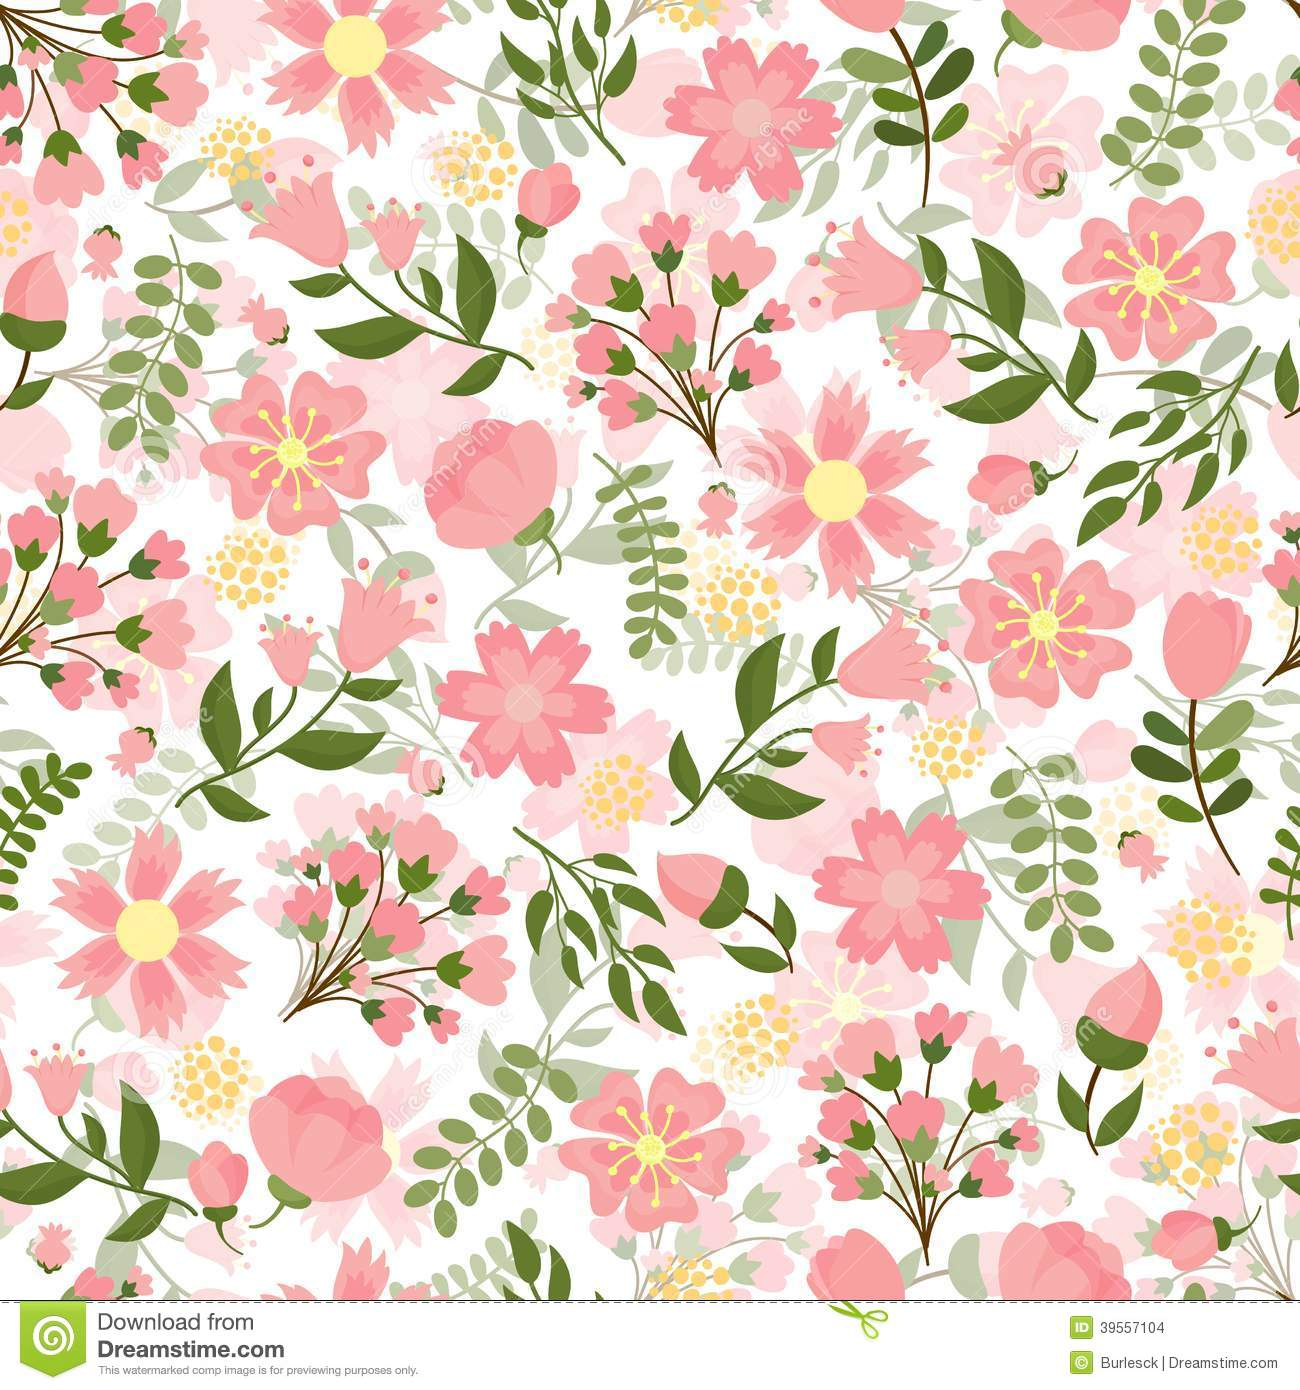 seamless floral background - photo #49